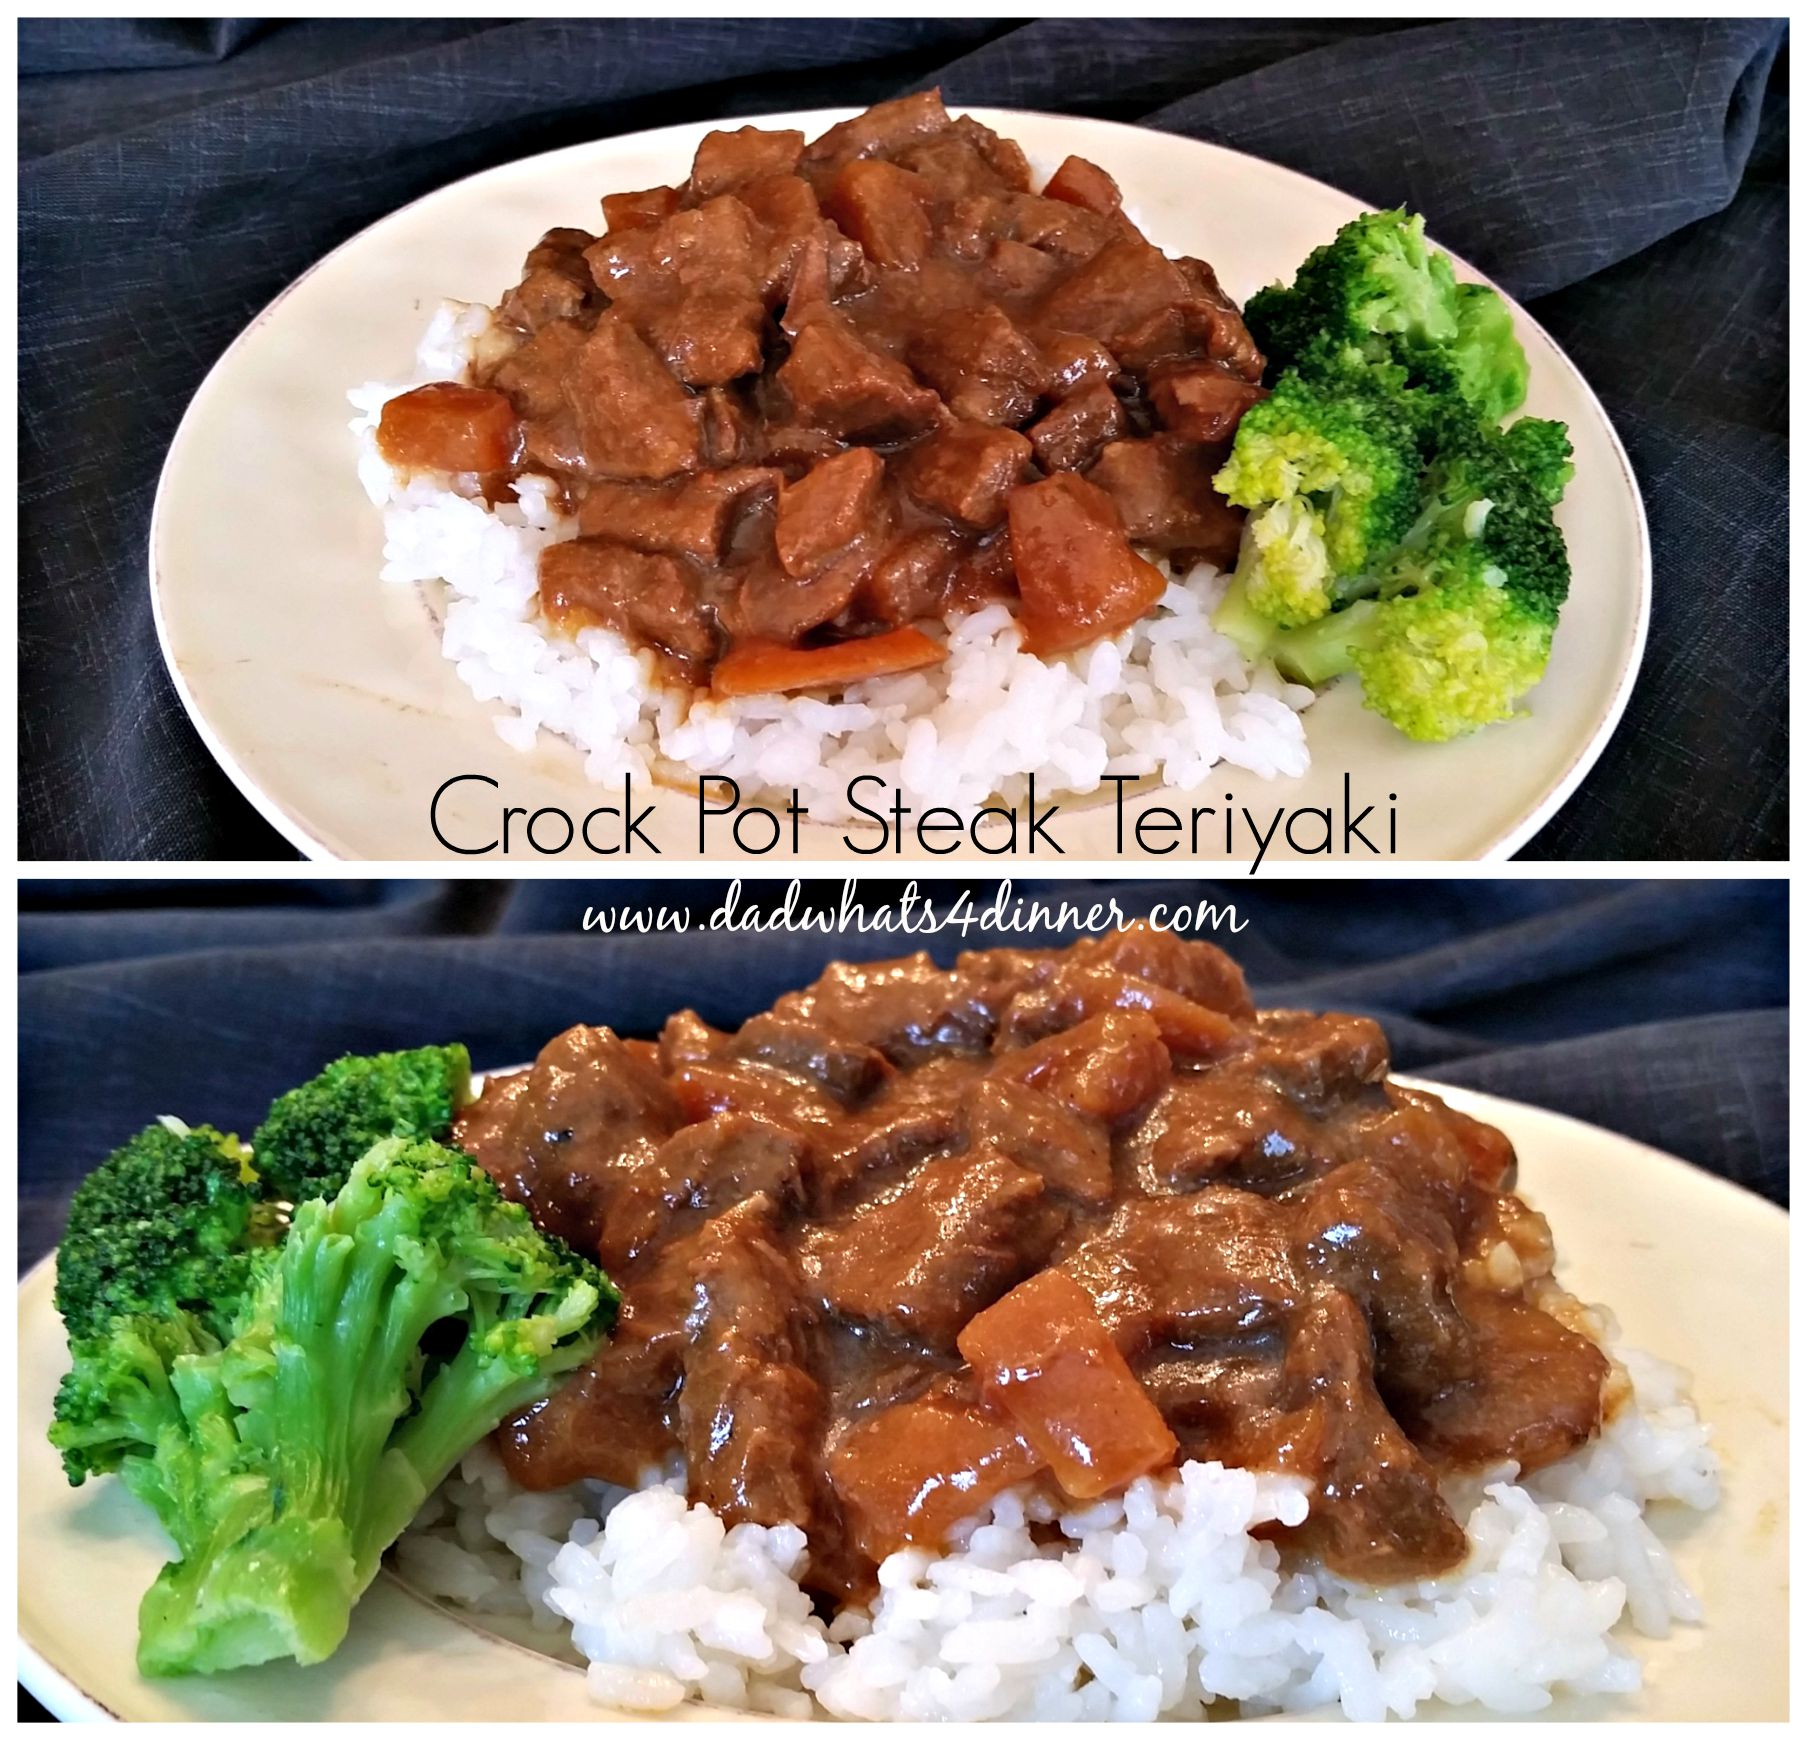 Here is a super simple recipe for Crock Pot Steak Teriyaki. This recipe uses only 4 ingredients. Beef, Teriyaki sauce, pineapple tidbits and sliced water chestnuts.